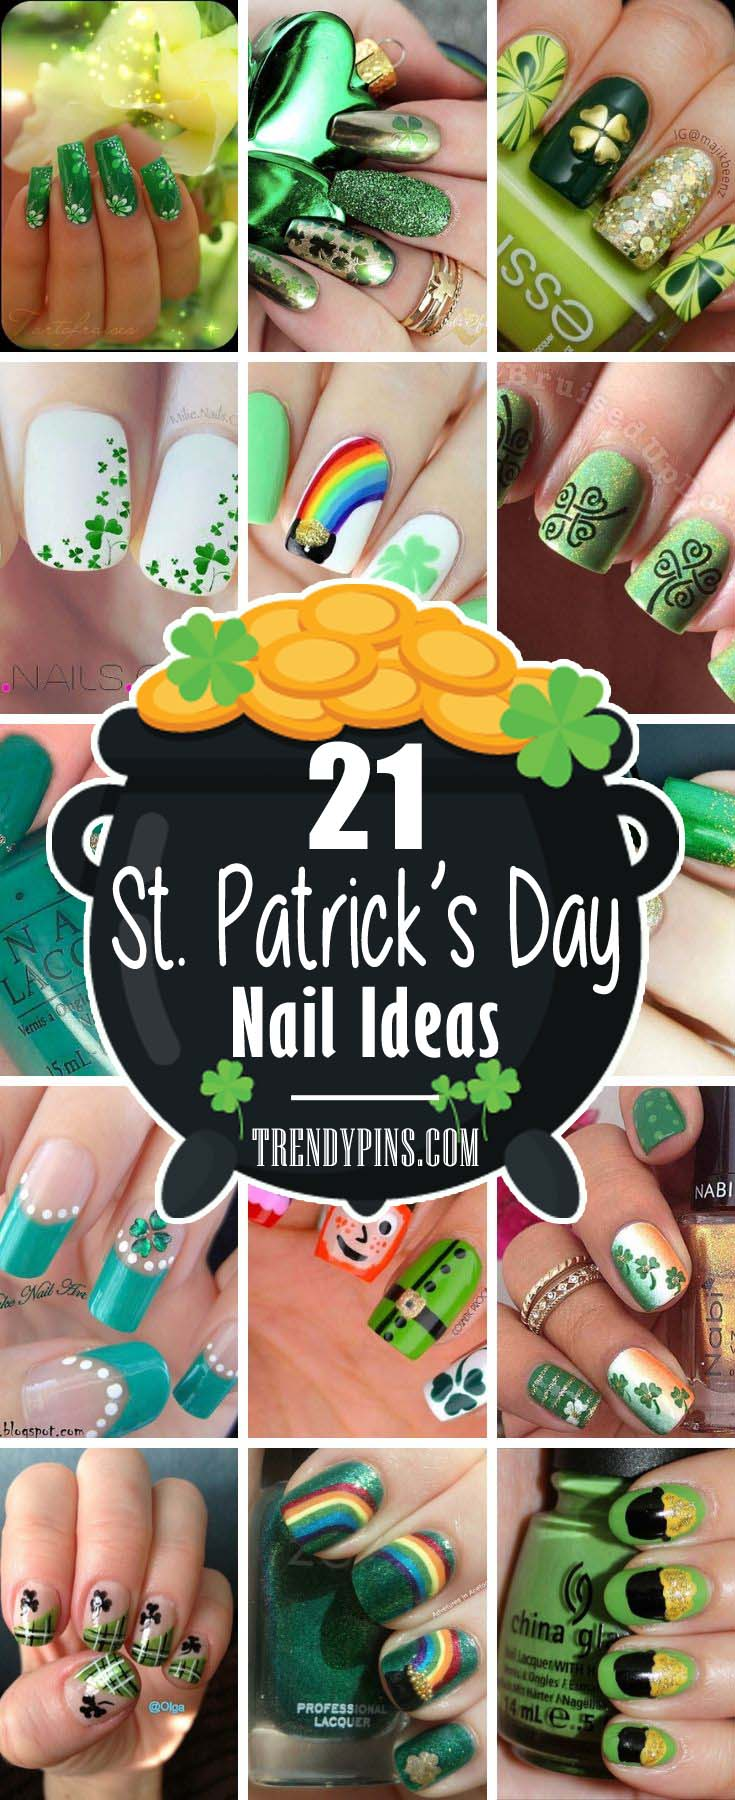 If you're having a hard time finding the coolest nail ideas to rock for this St. Patrick's Day, you will be happy to see these. There's a great variety of St Patrick day nails. #St. Patrick's Day nails #nails #beauty #trendypins